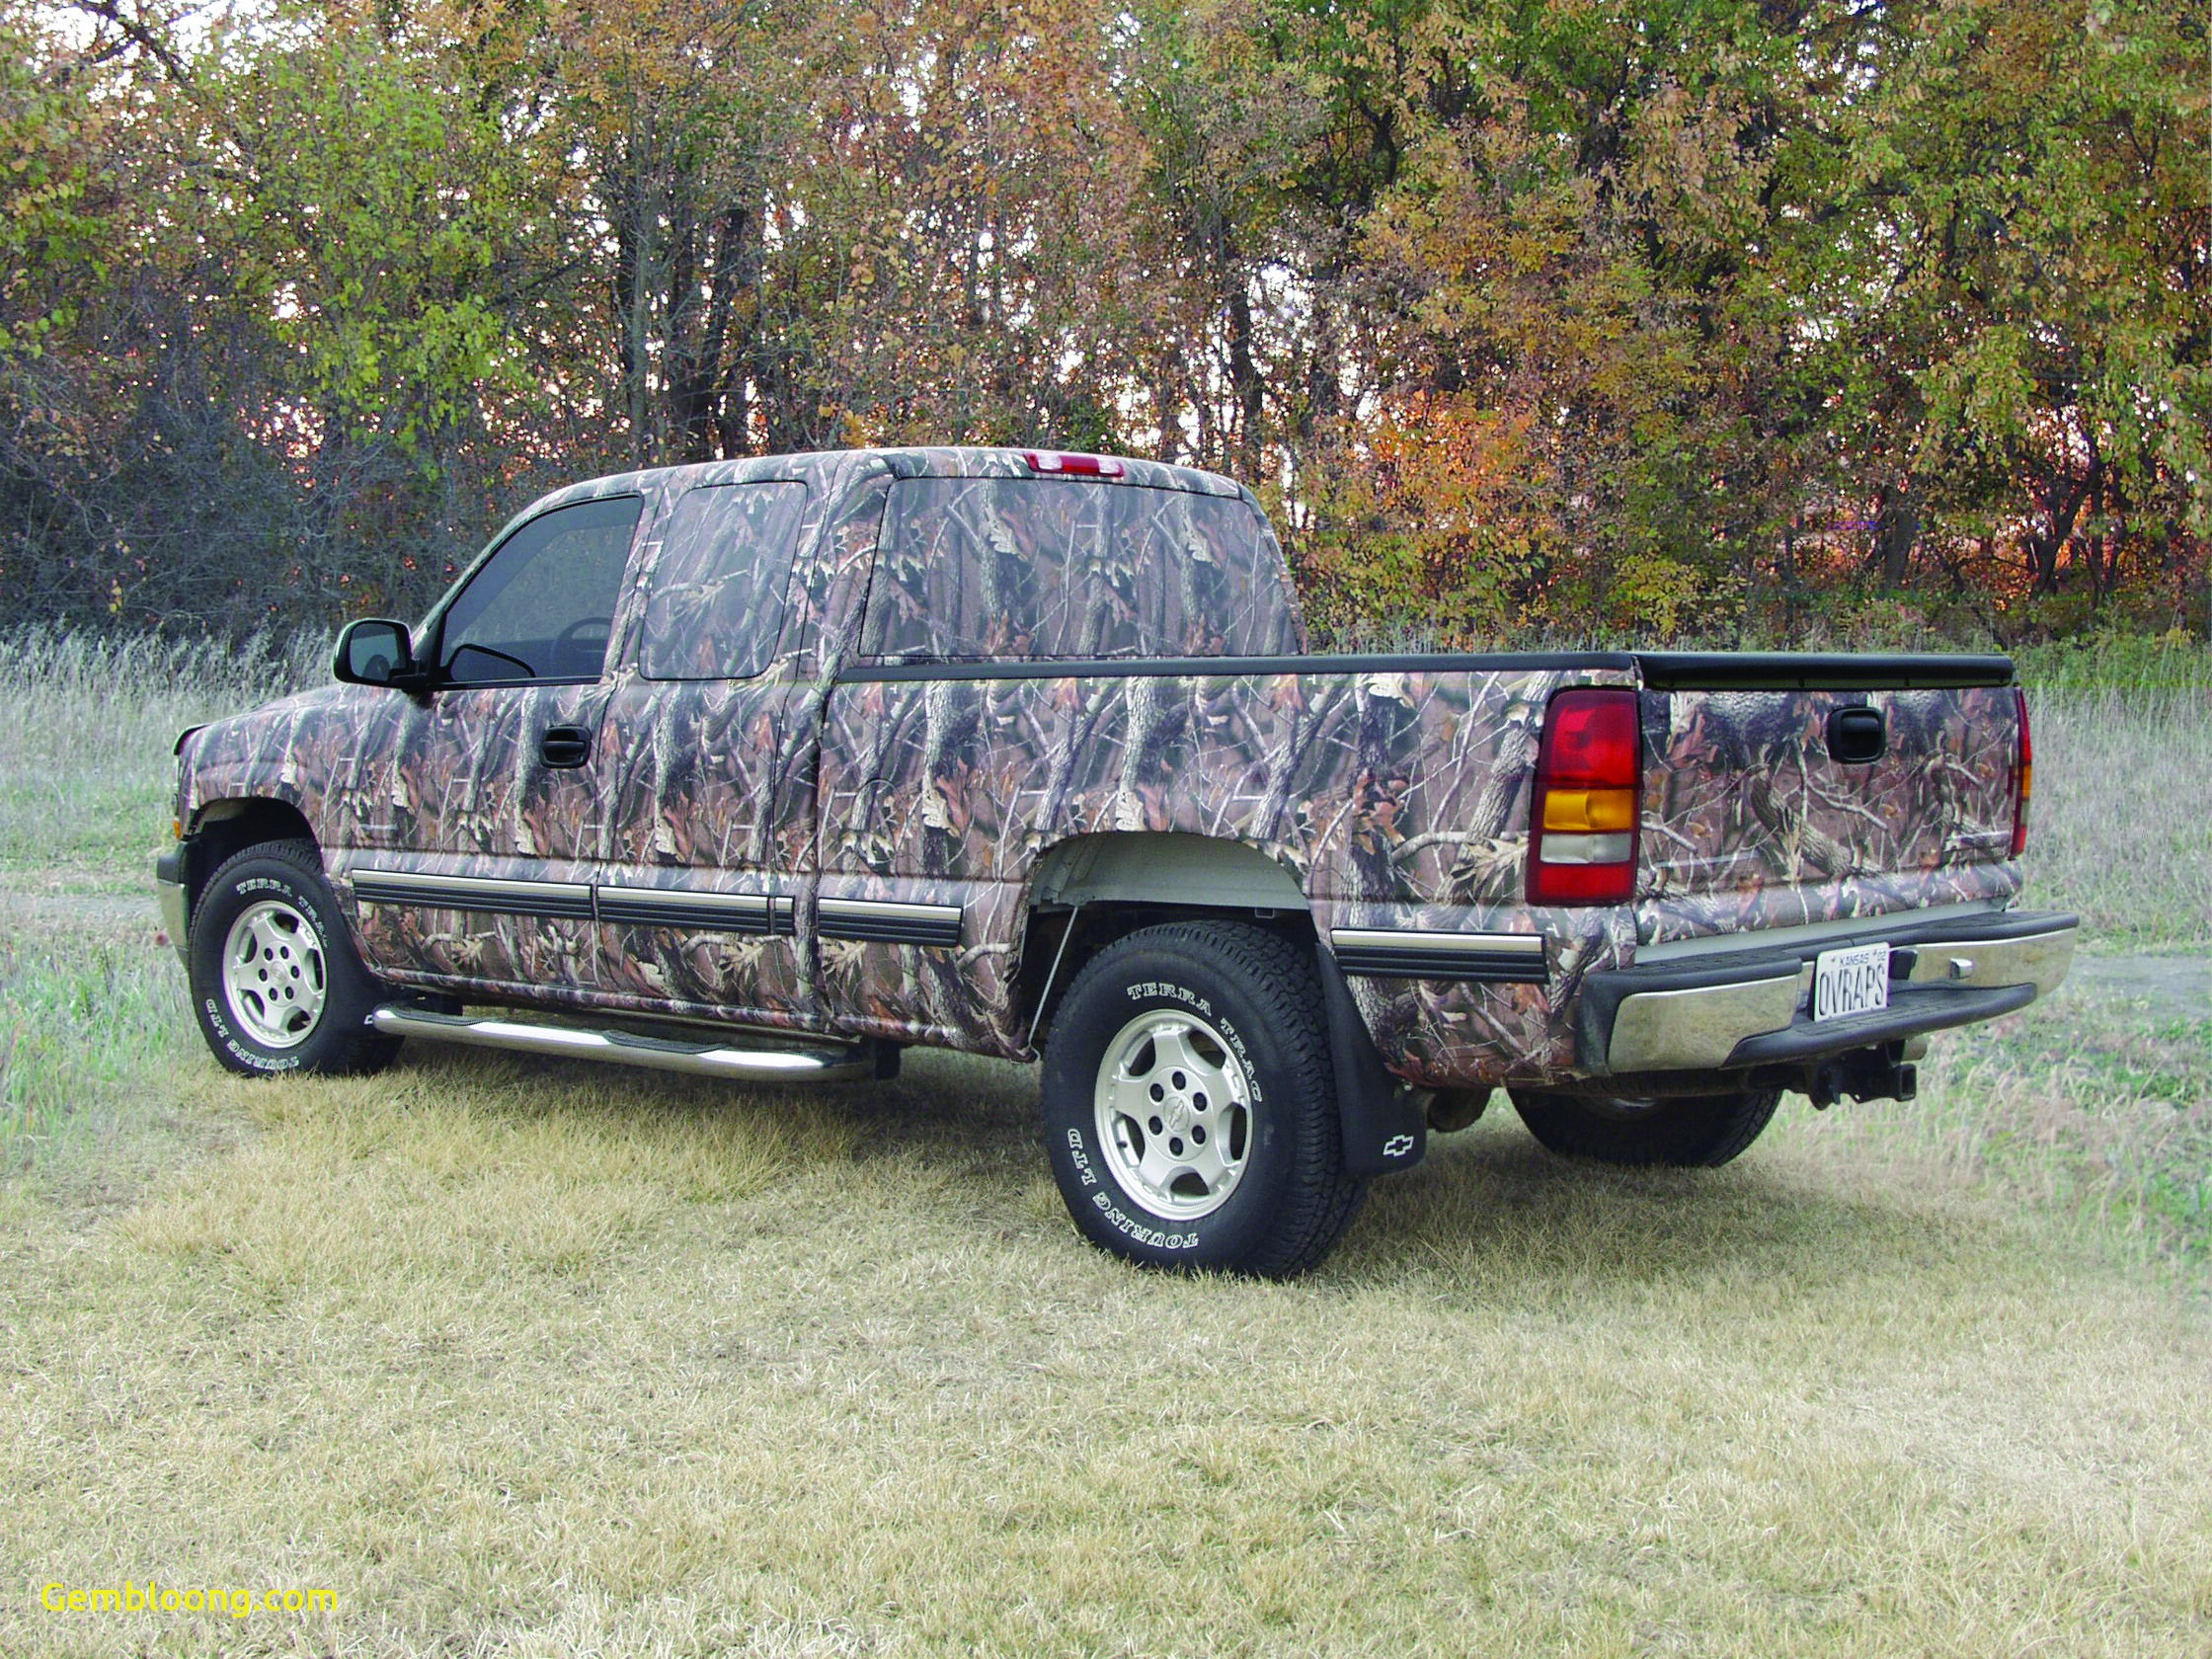 Cars An Trucks for Sale Near Me Unique Camoflauge Chevy are You Kidding 3